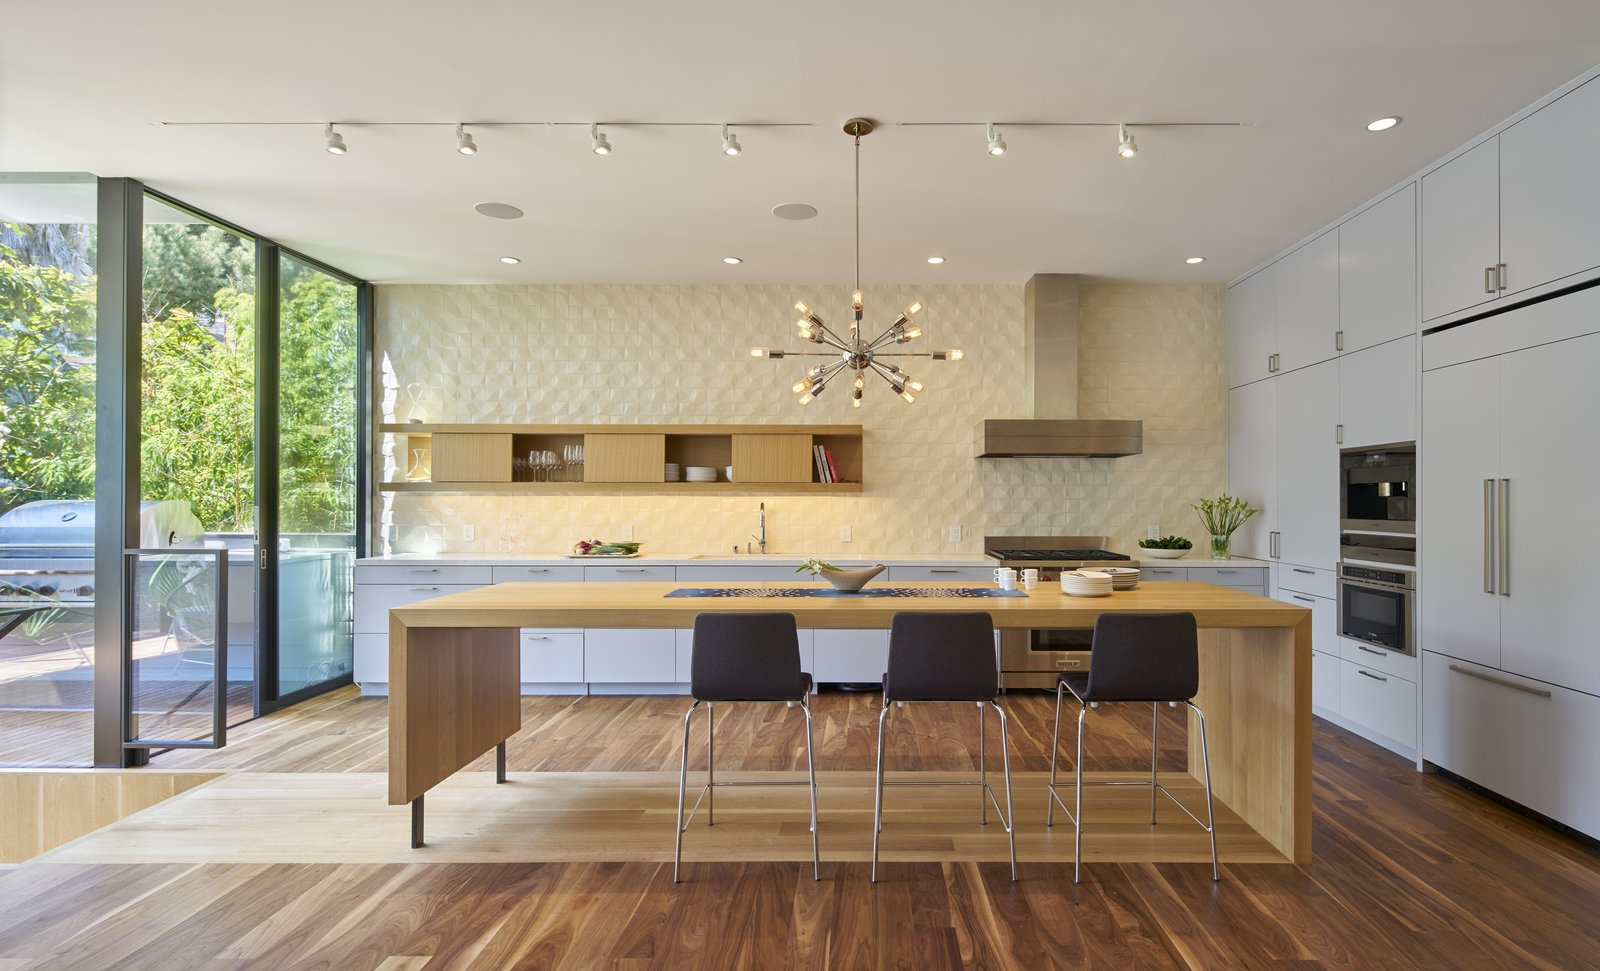 Kitchen, Dark Hardwood Floor, Colorful Cabinet, Wood Cabinet, Light Hardwood Floor, Pendant Lighting, Track Lighting, Refrigerator, Wall Oven, Microwave, Range, and Range Hood  29th Street Residence by Schwartz and Architecture